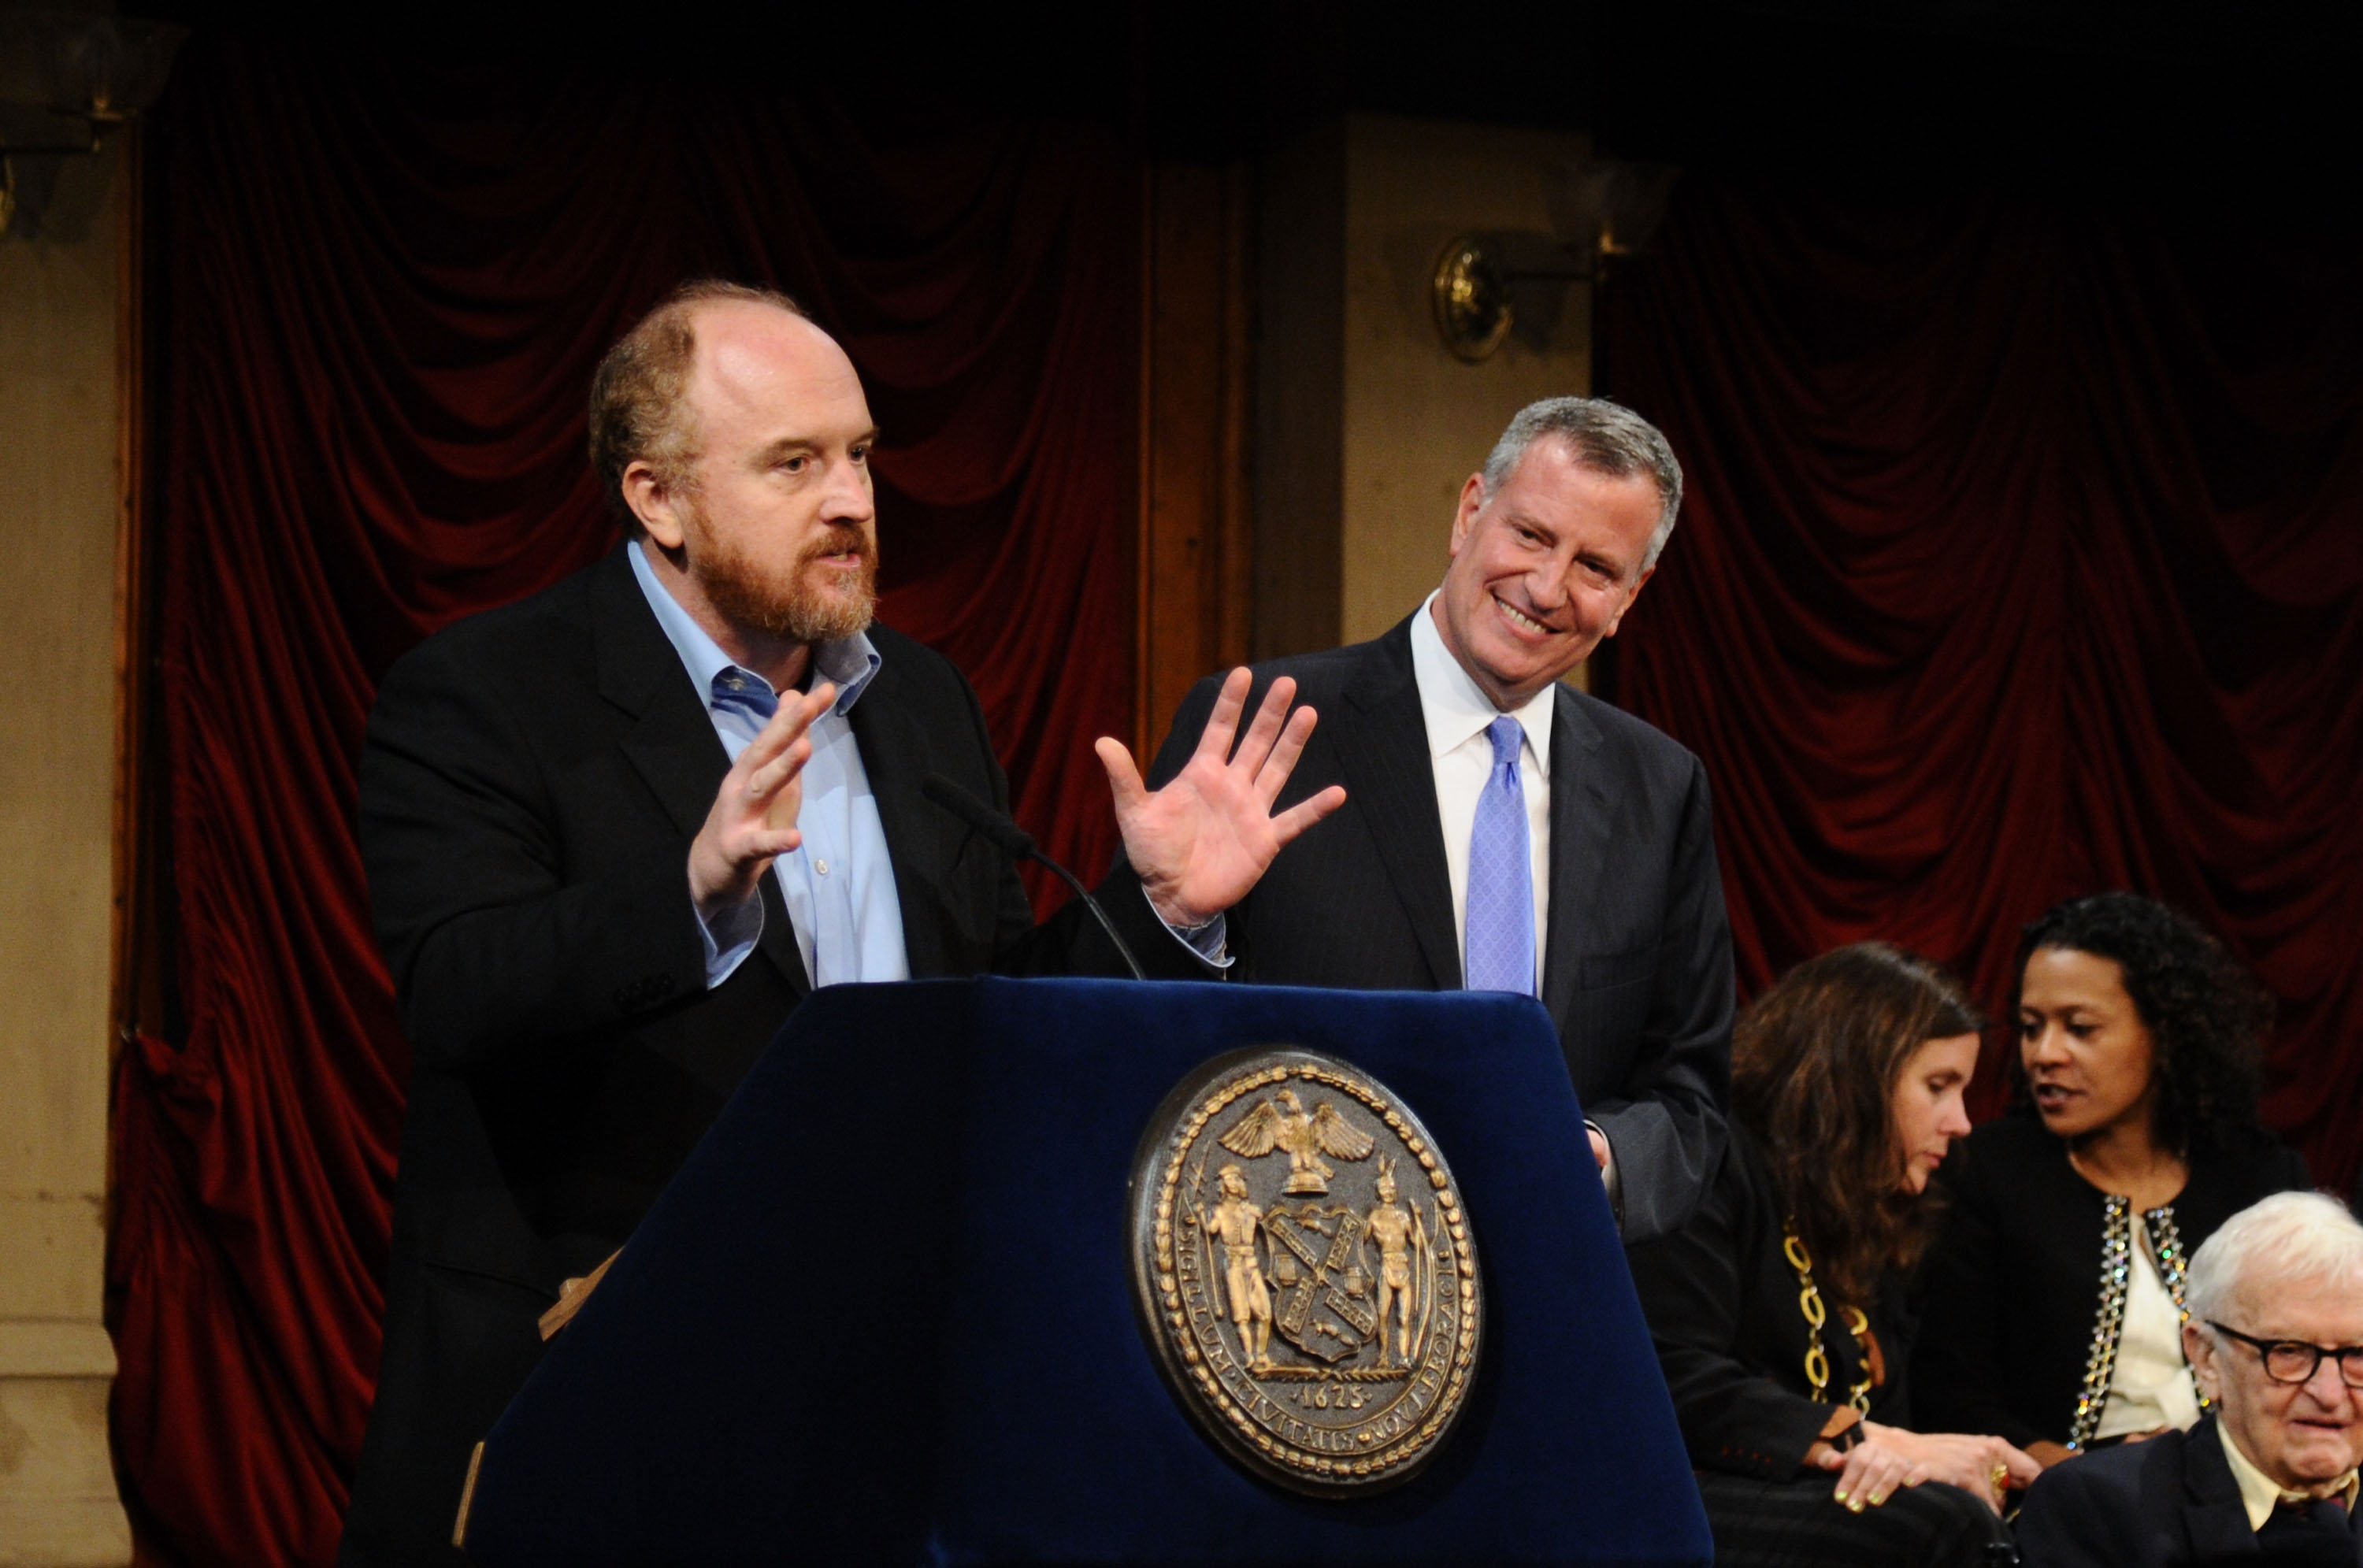 Louis C.K. speaks during  Made In NY  Awards Ceremony at Weylin B. Seymour's on Nov. 10, 2014 in Brooklyn, New York.